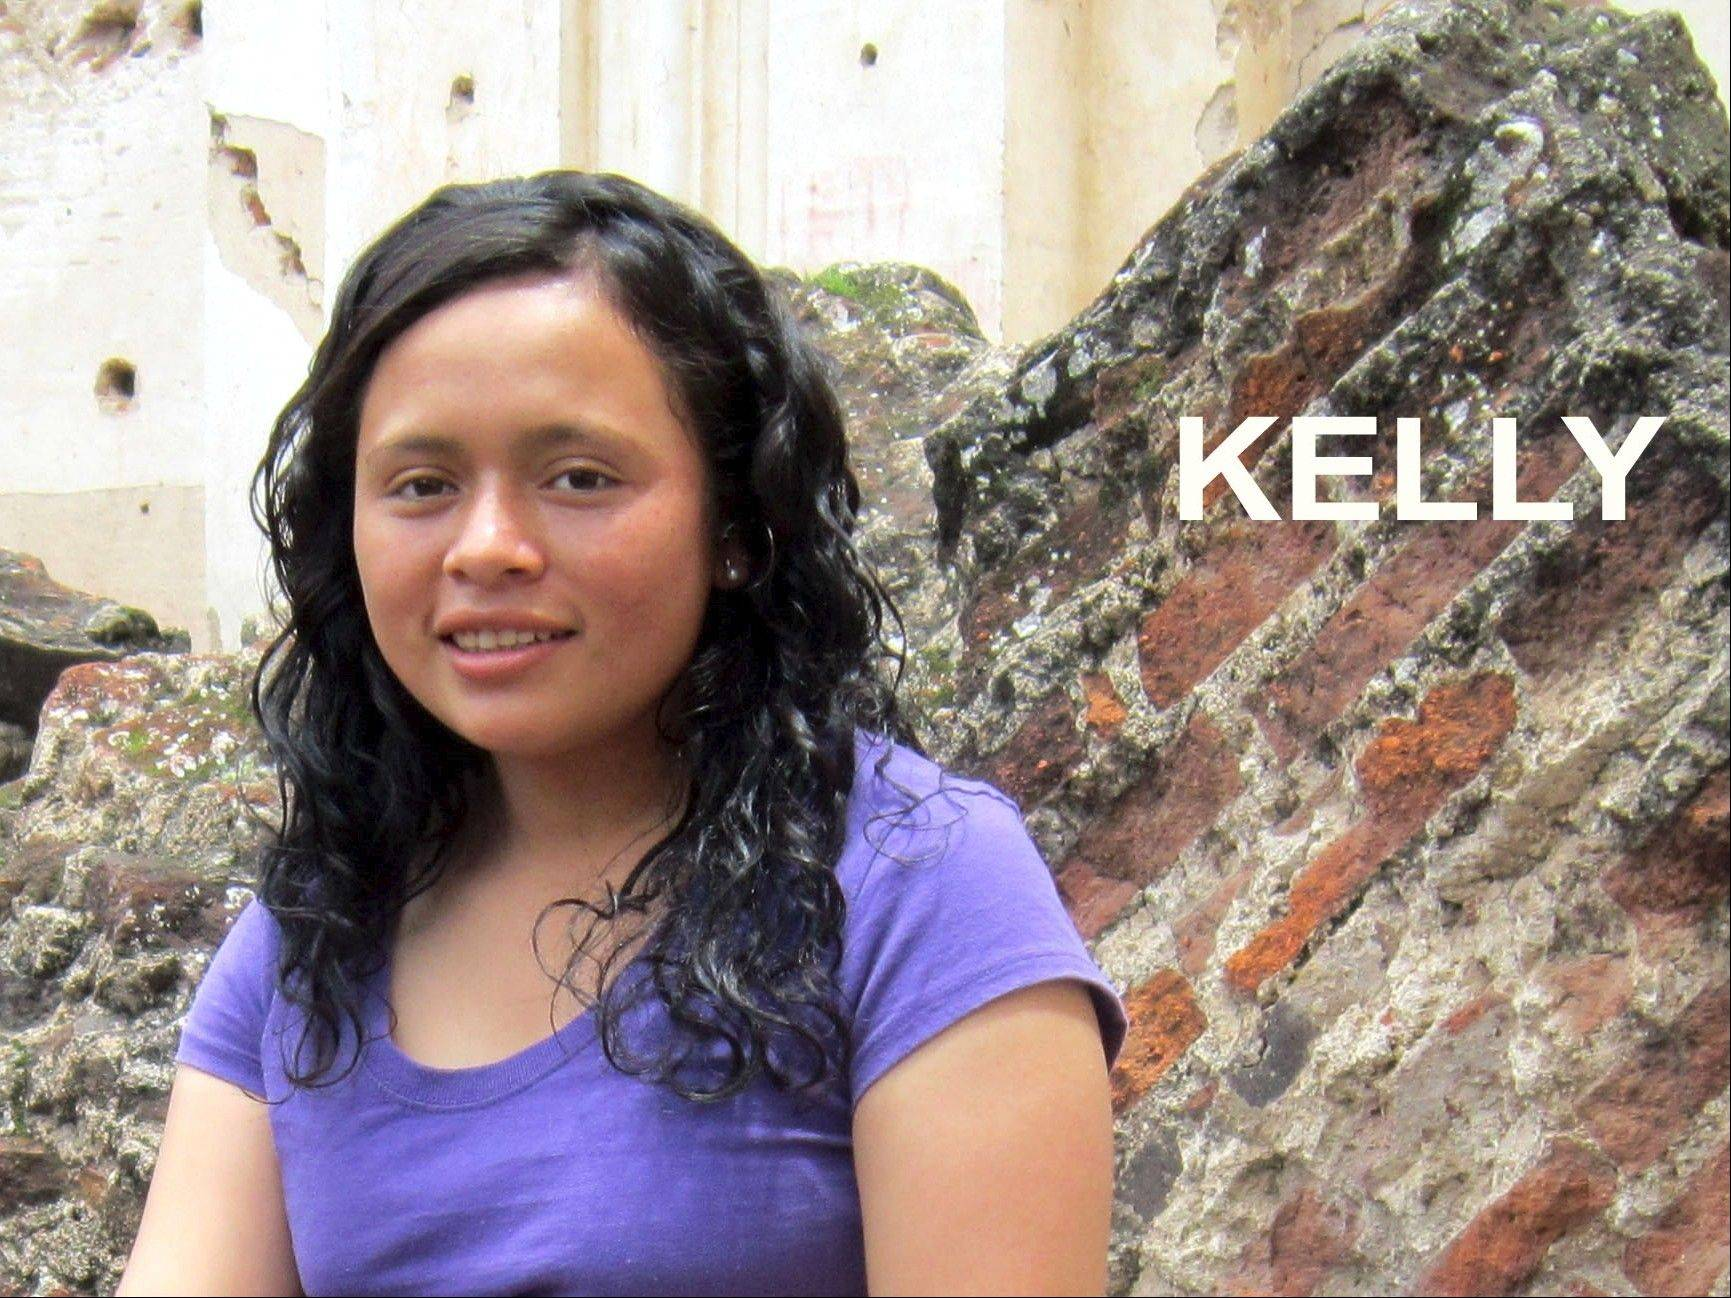 Kelly is one of the girls the Prims work with in Guatemala.